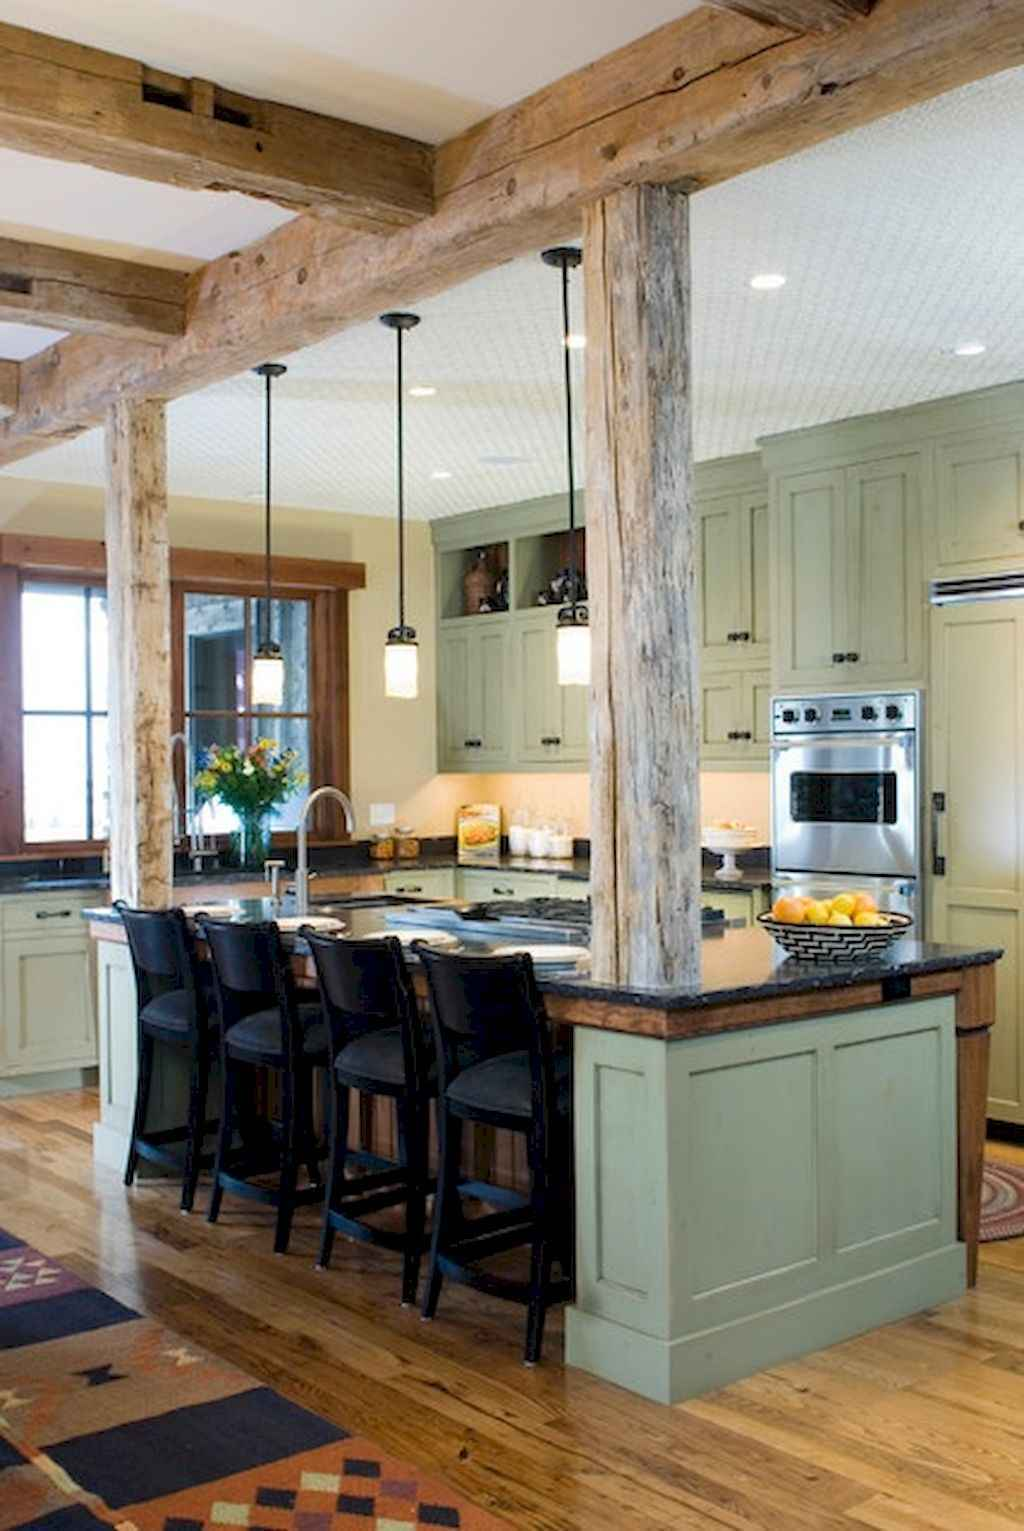 60 eclectic kitchen ideas that charge up your remodel 54 for Kitchen ideas eclectic